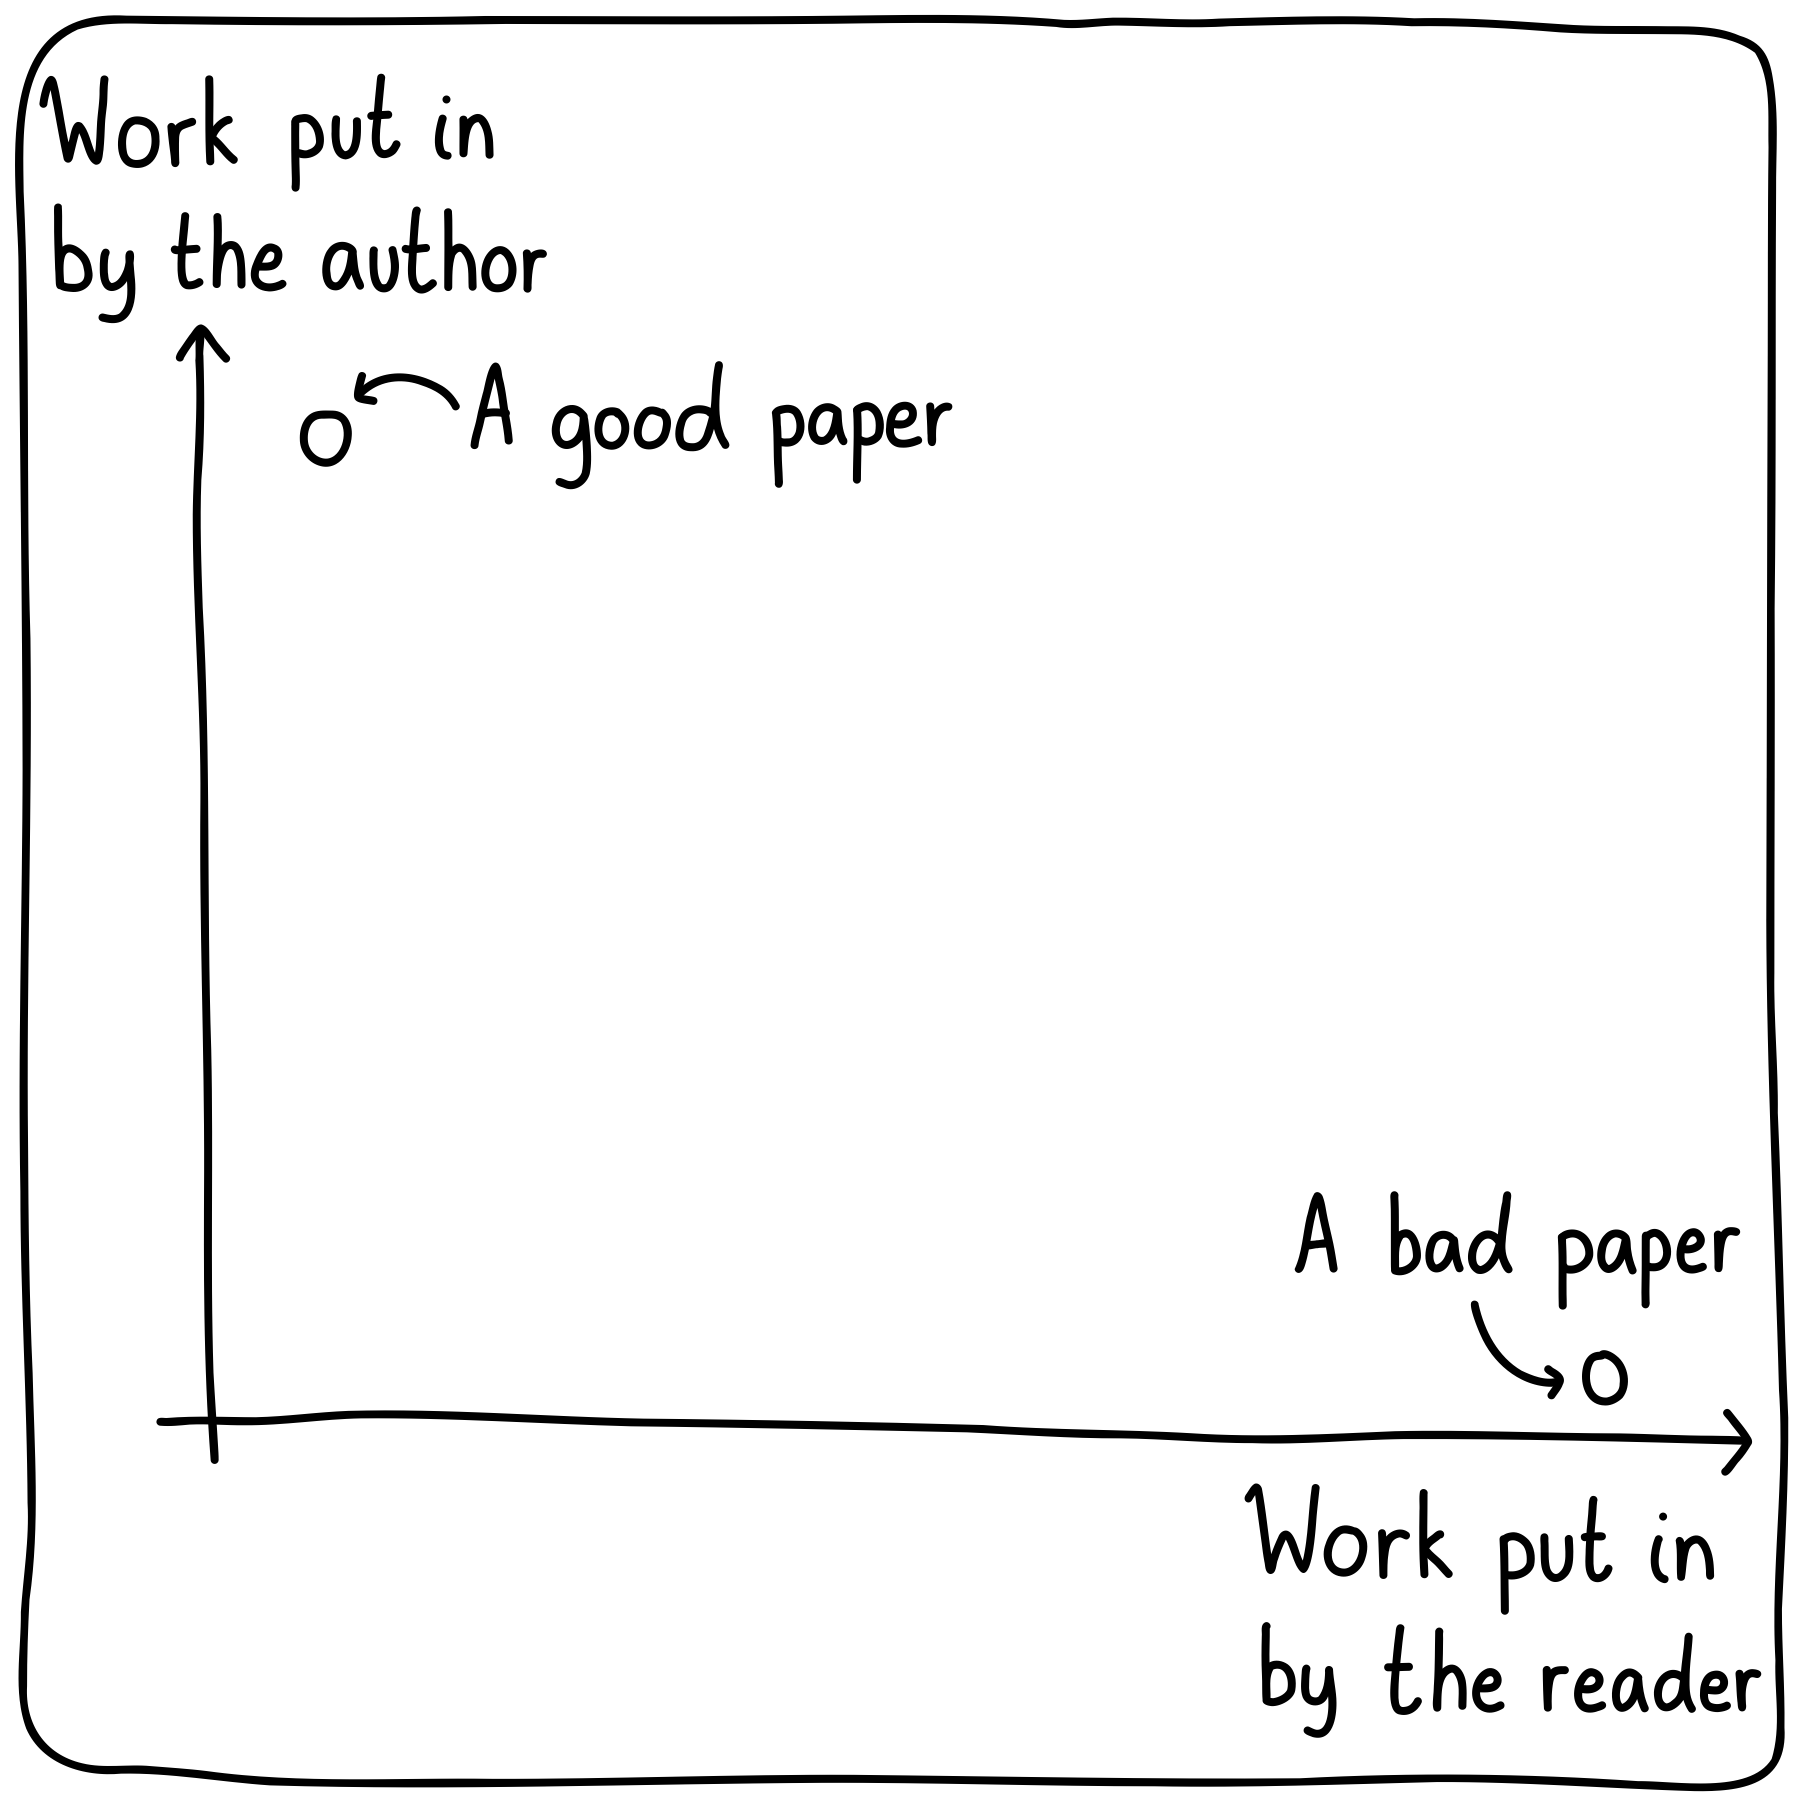 Plot of work put in by the author versus work put in by the reader. Good papers are on the top-left, while bad papers are in the bottom-right.